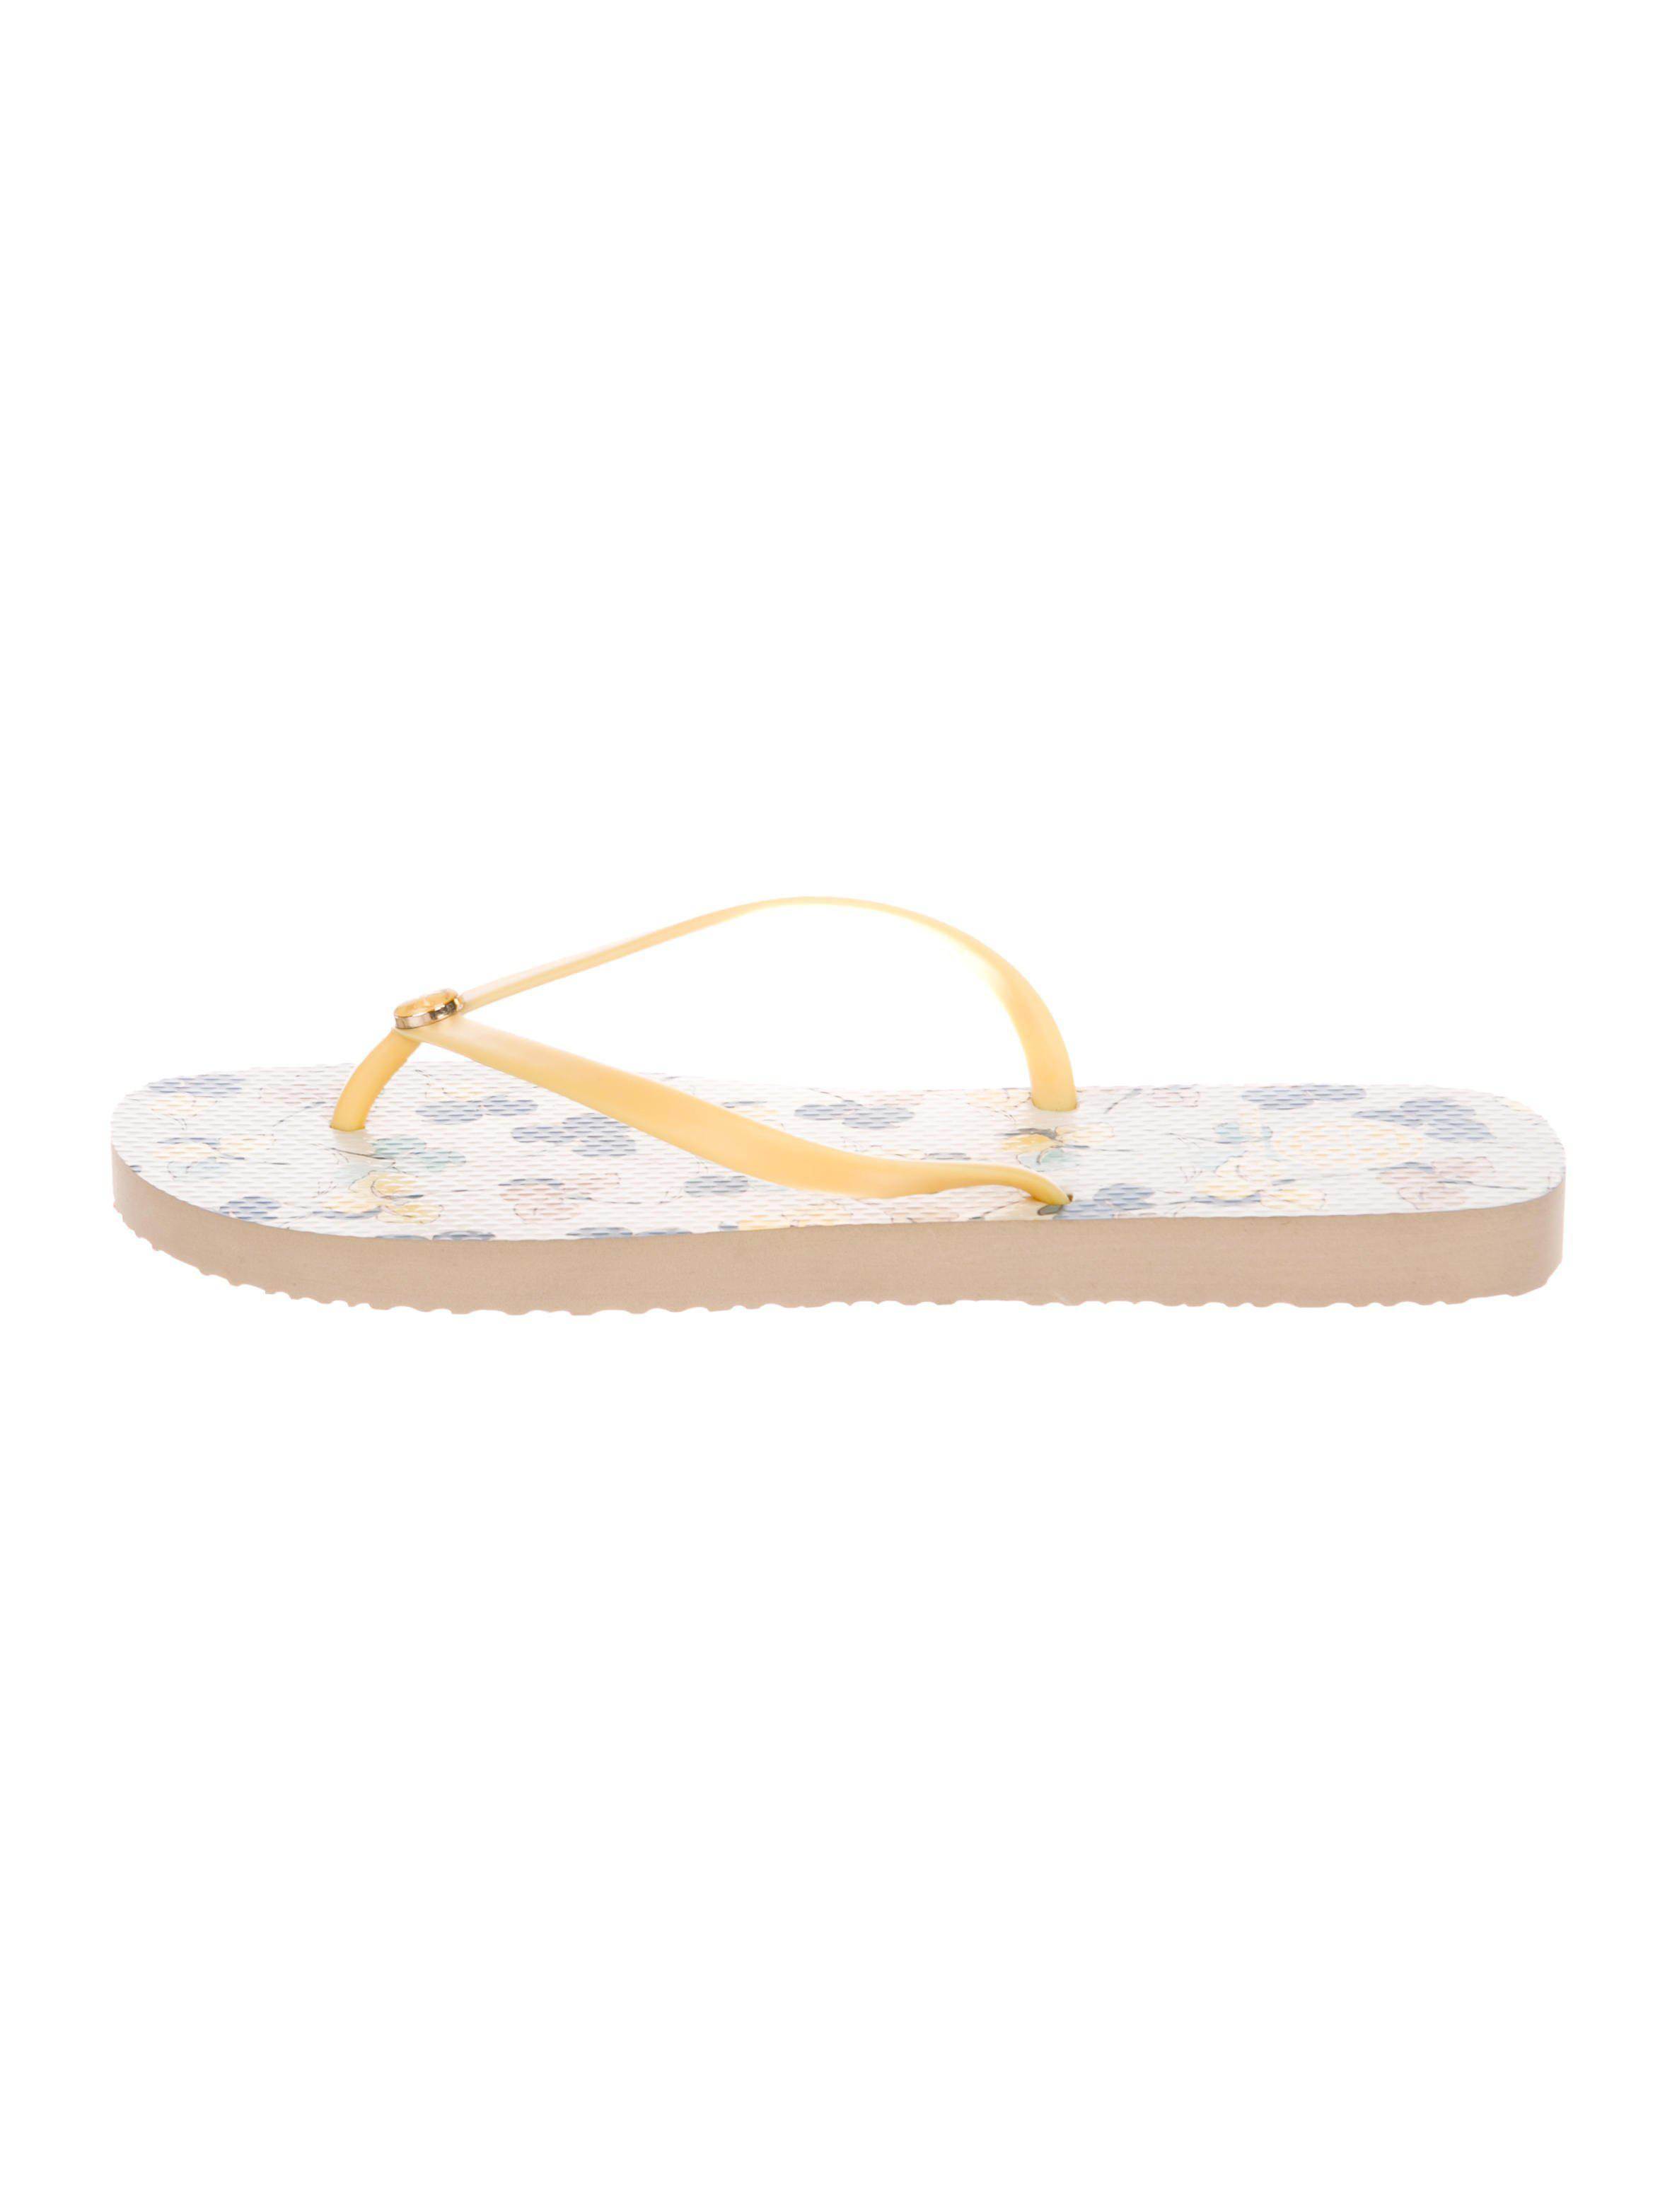 4abe3b211efd Lyst - Tory Burch Logo Thong Sandals in Yellow